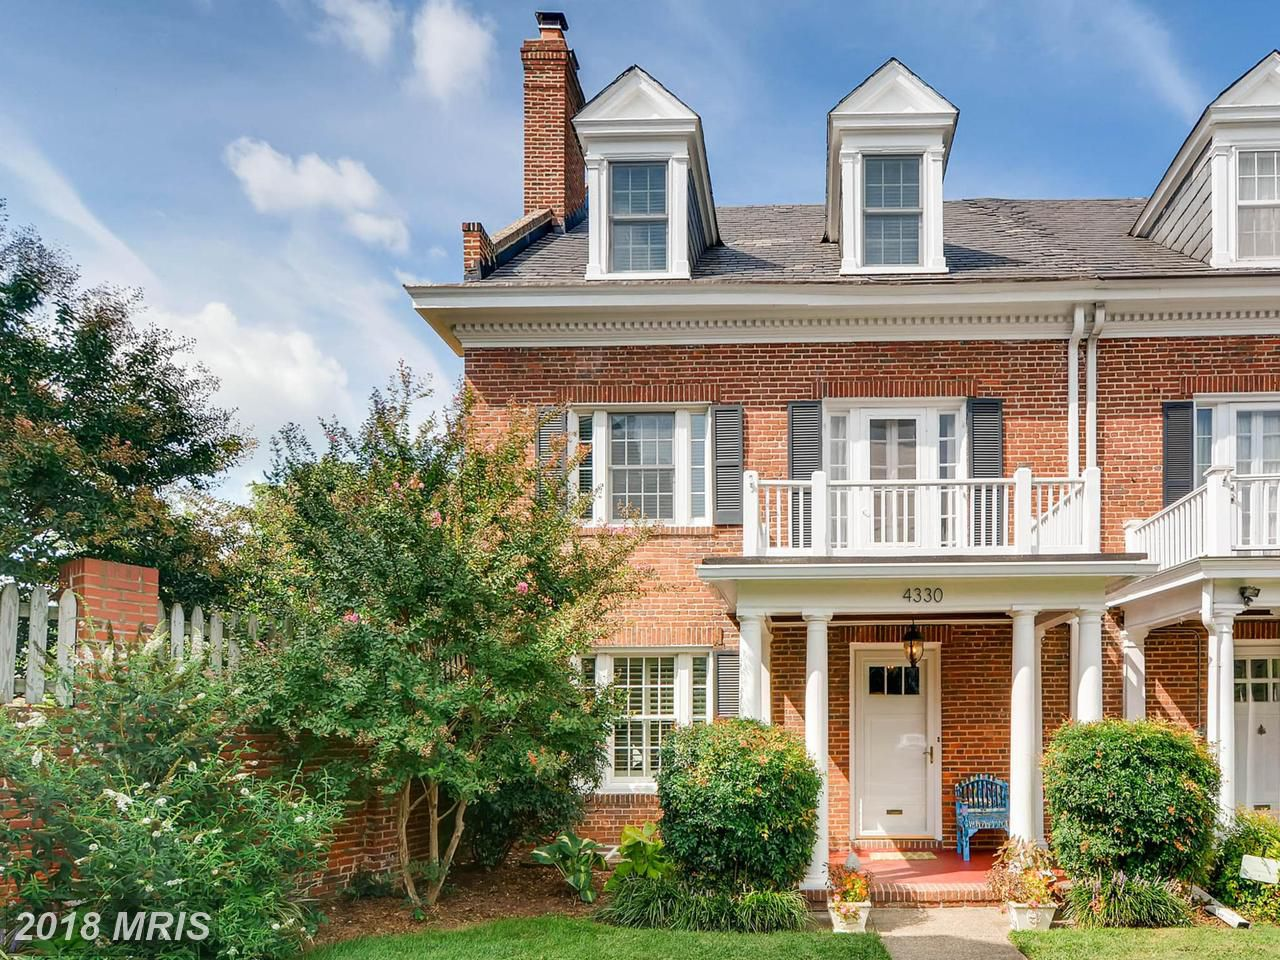 5-bedroom-in-Baltimore-for-$500K